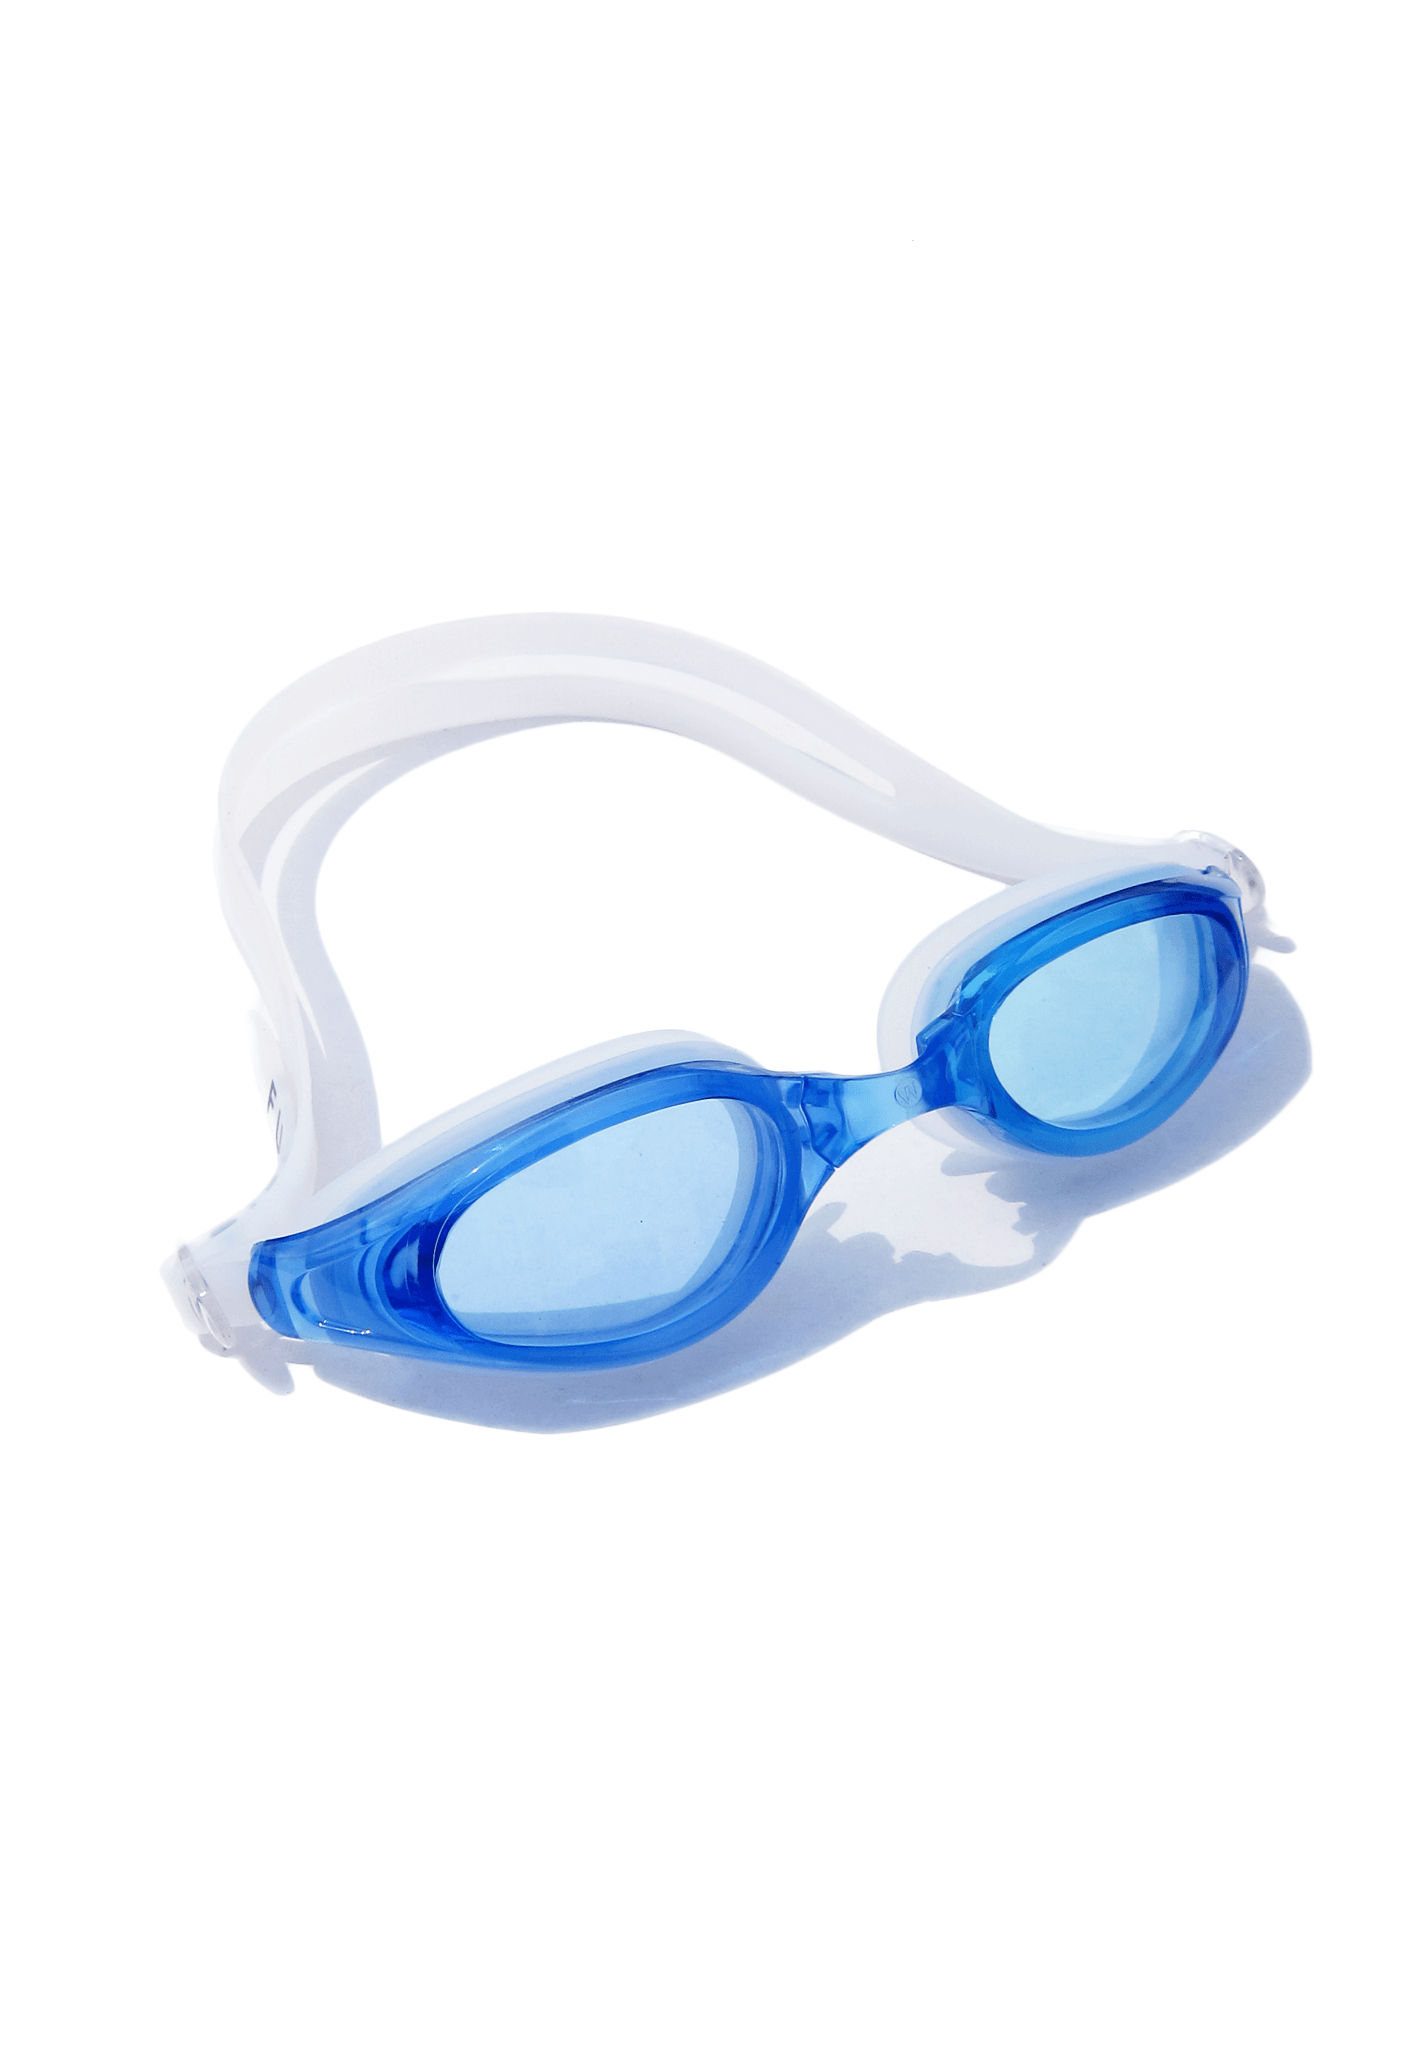 Leisure Wide-Framed Goggles (Blue)